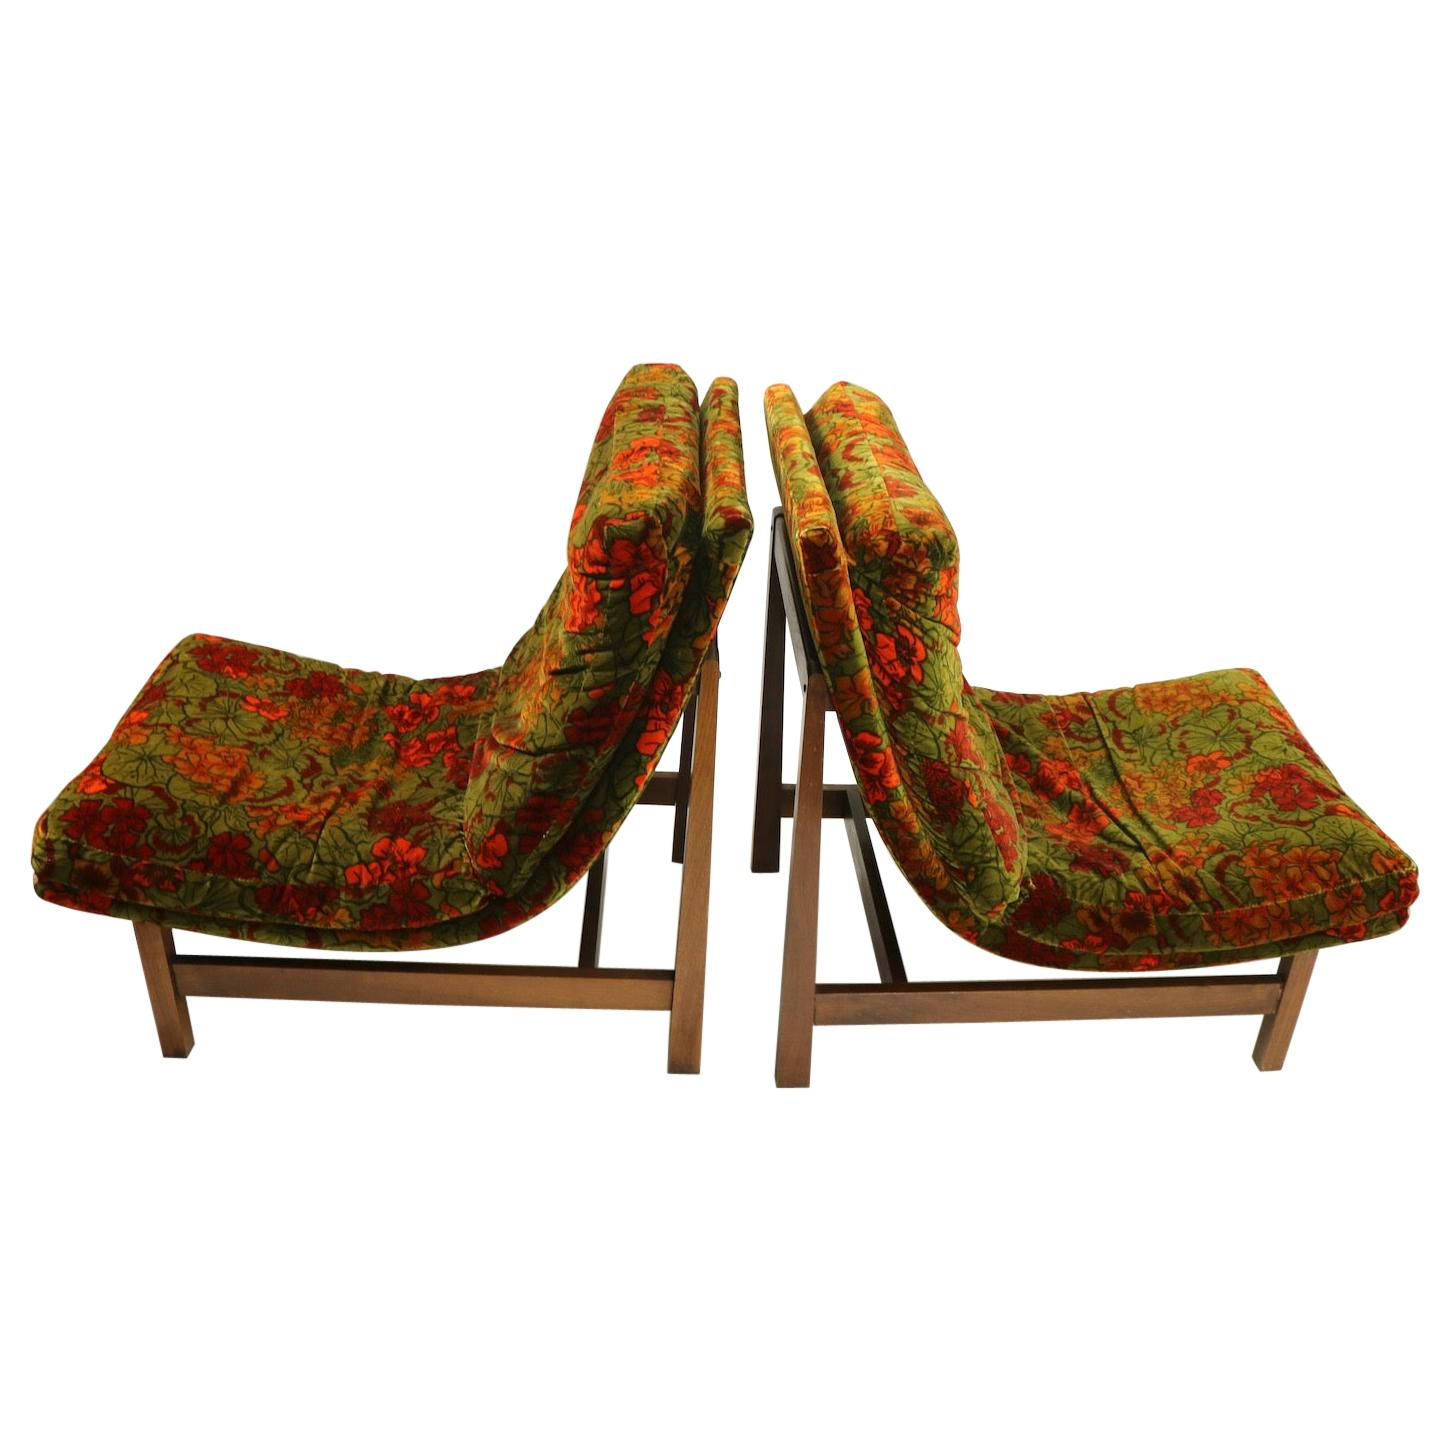 Pair of Armless Scoop Style Lounge Chairs after Probber